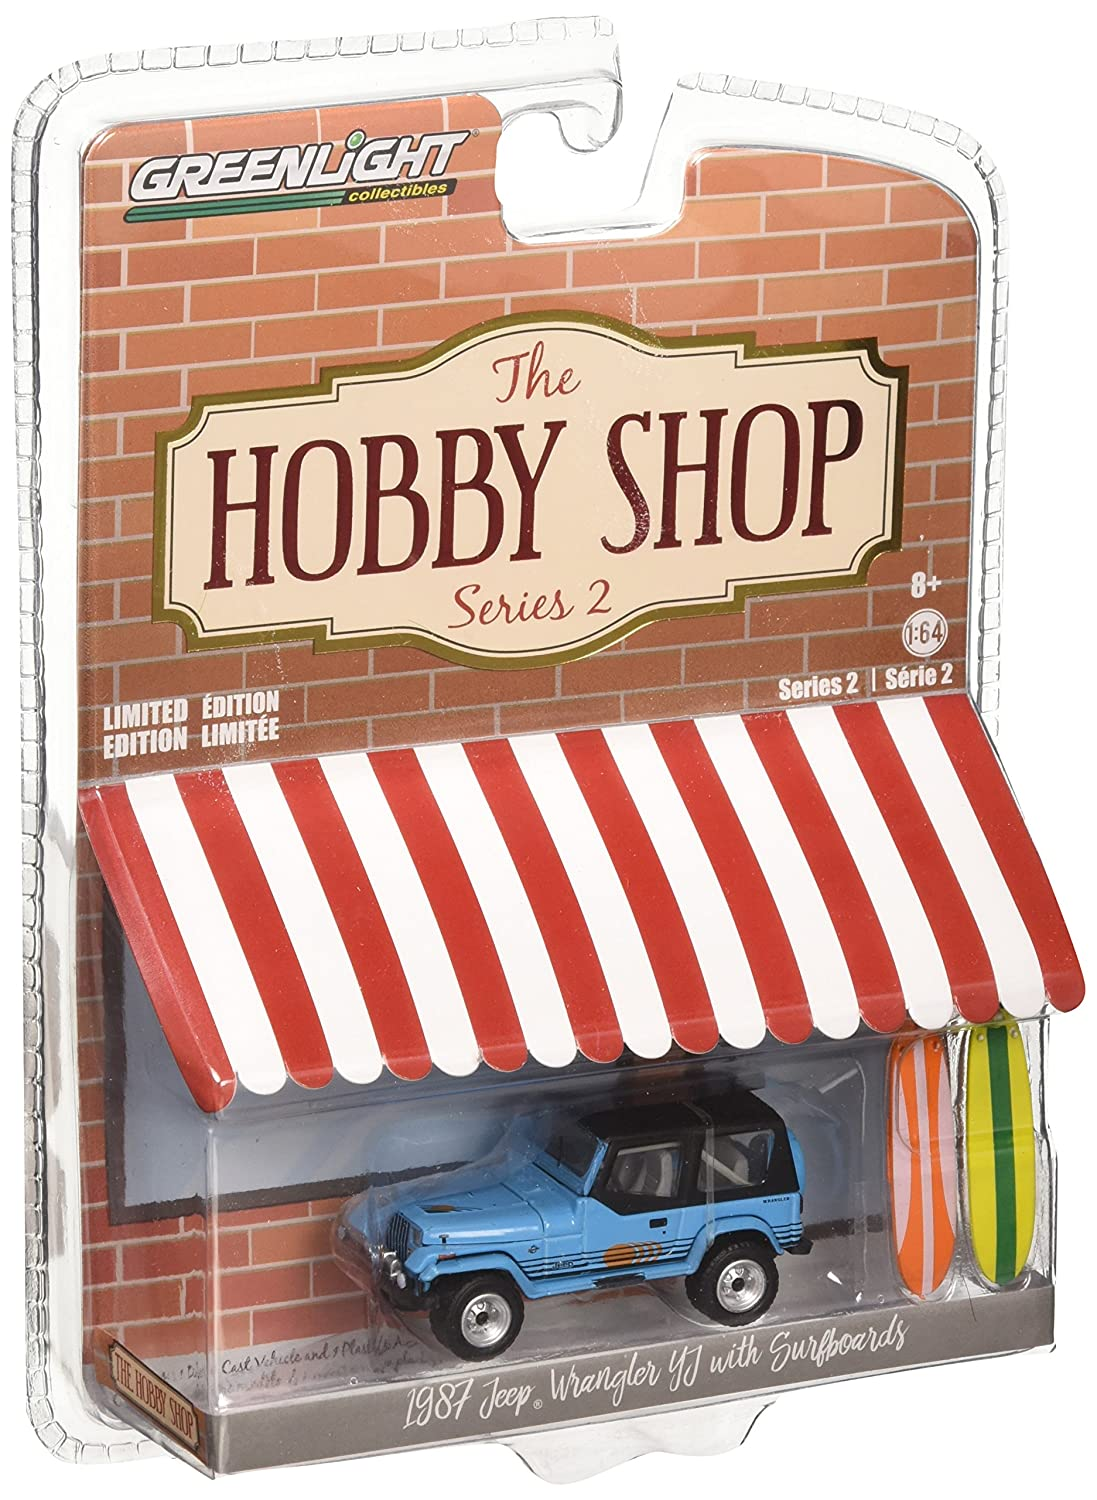 Greenlight 1 64 The Hobby Shop Series 2 1987 Jeep Wrangler YJ with Surfboards